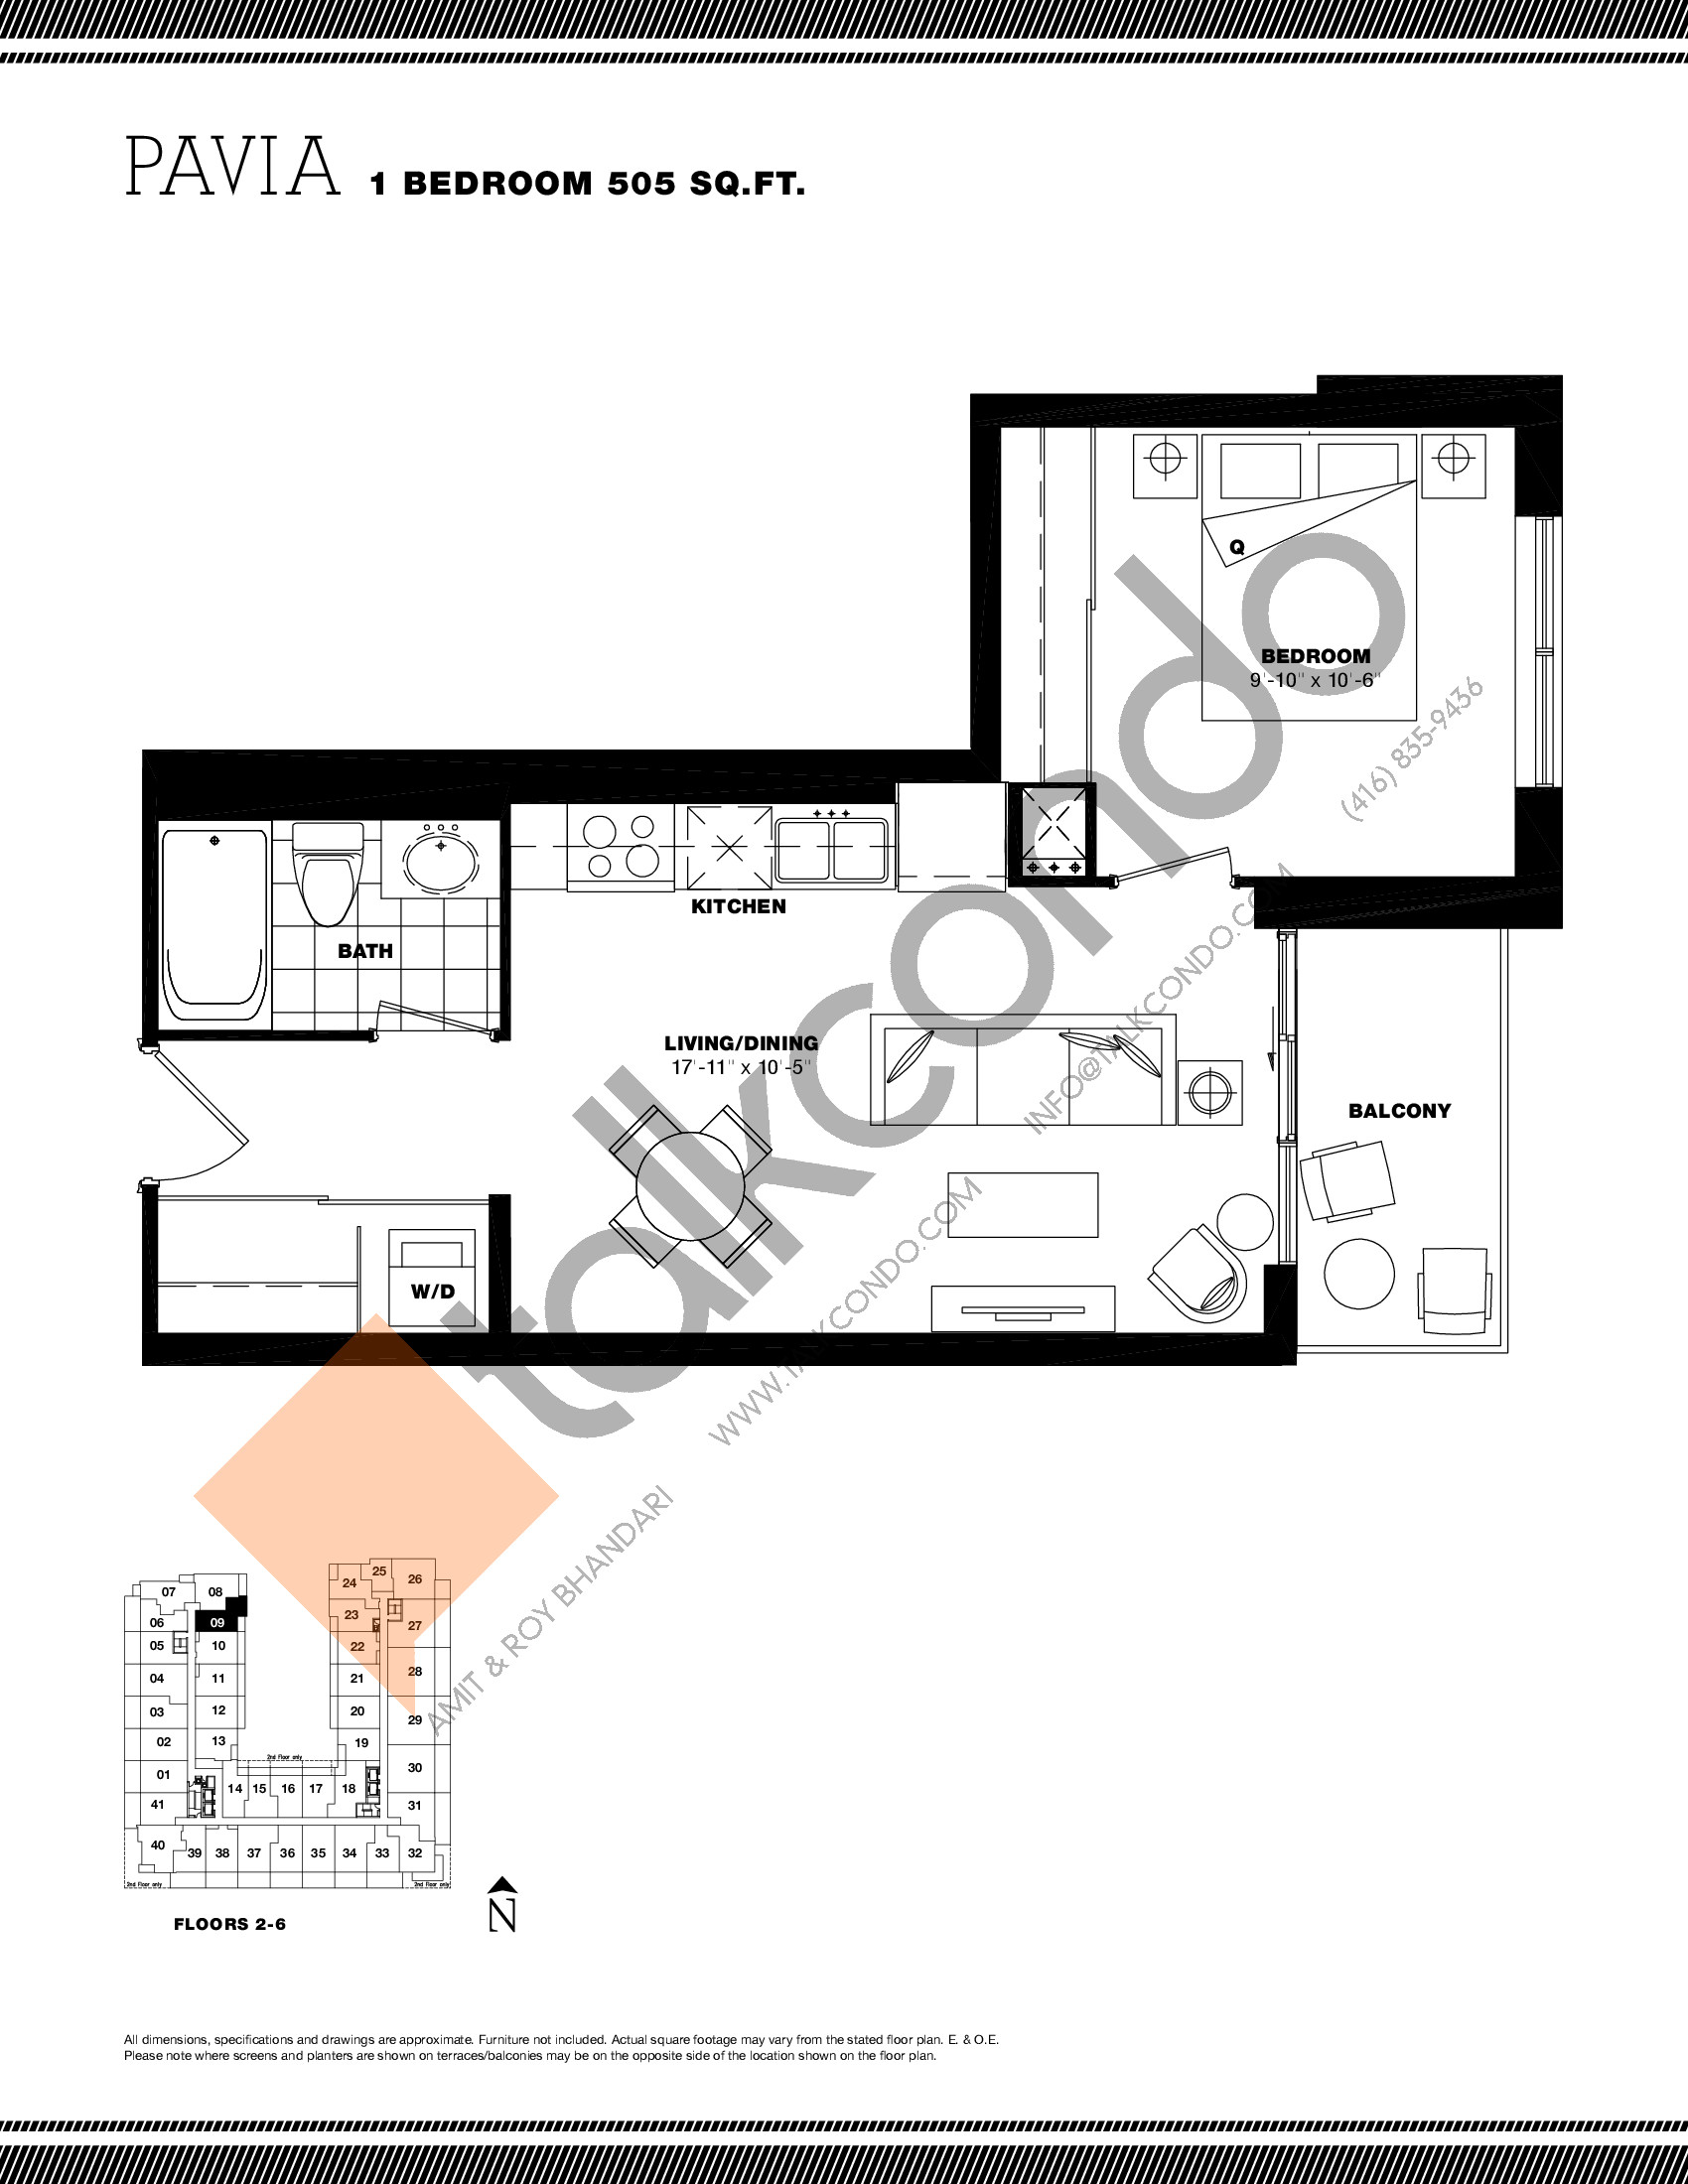 Pavia Floor Plan at Residenze Palazzo at Treviso 3 Condos - 505 sq.ft